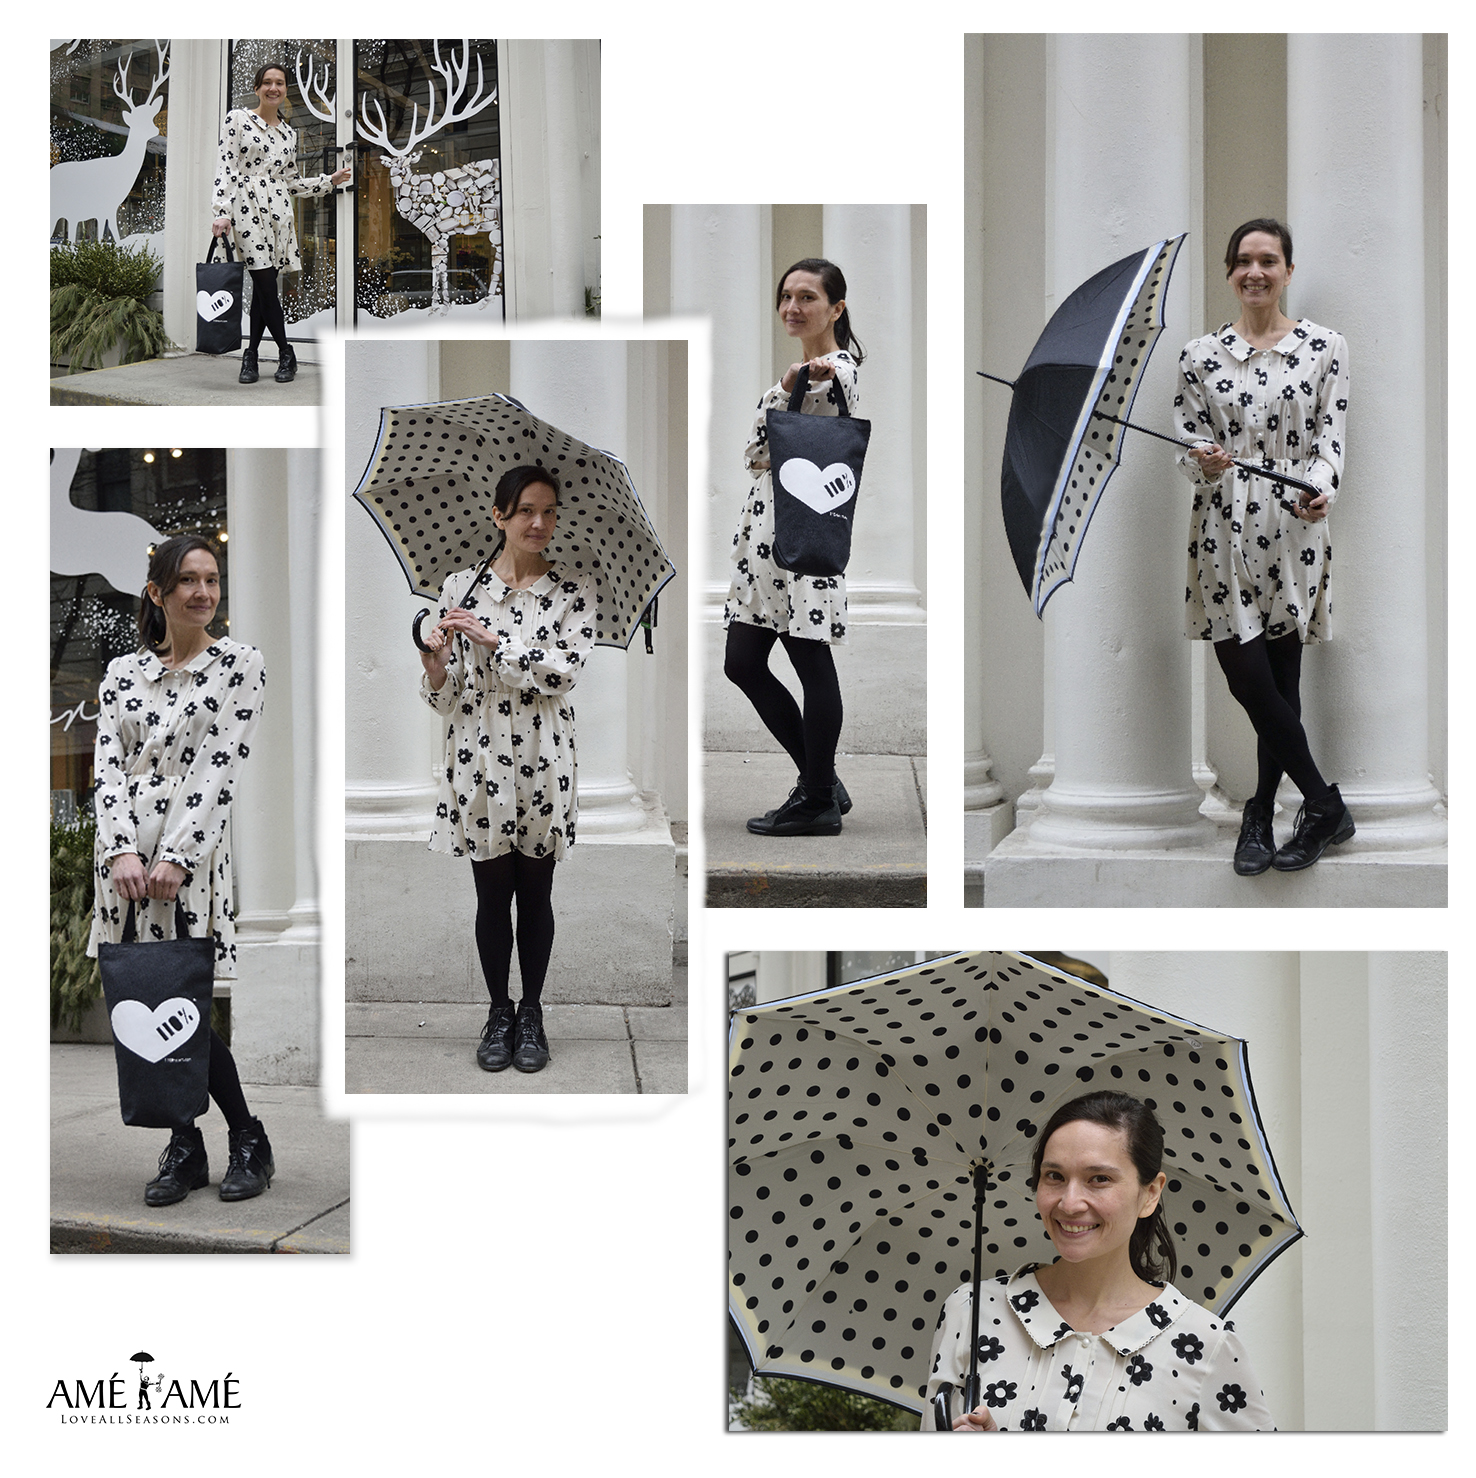 black-and-white-polka-dot-umbrella-heart-tote-teresa-soroka-ame-ame-nyc